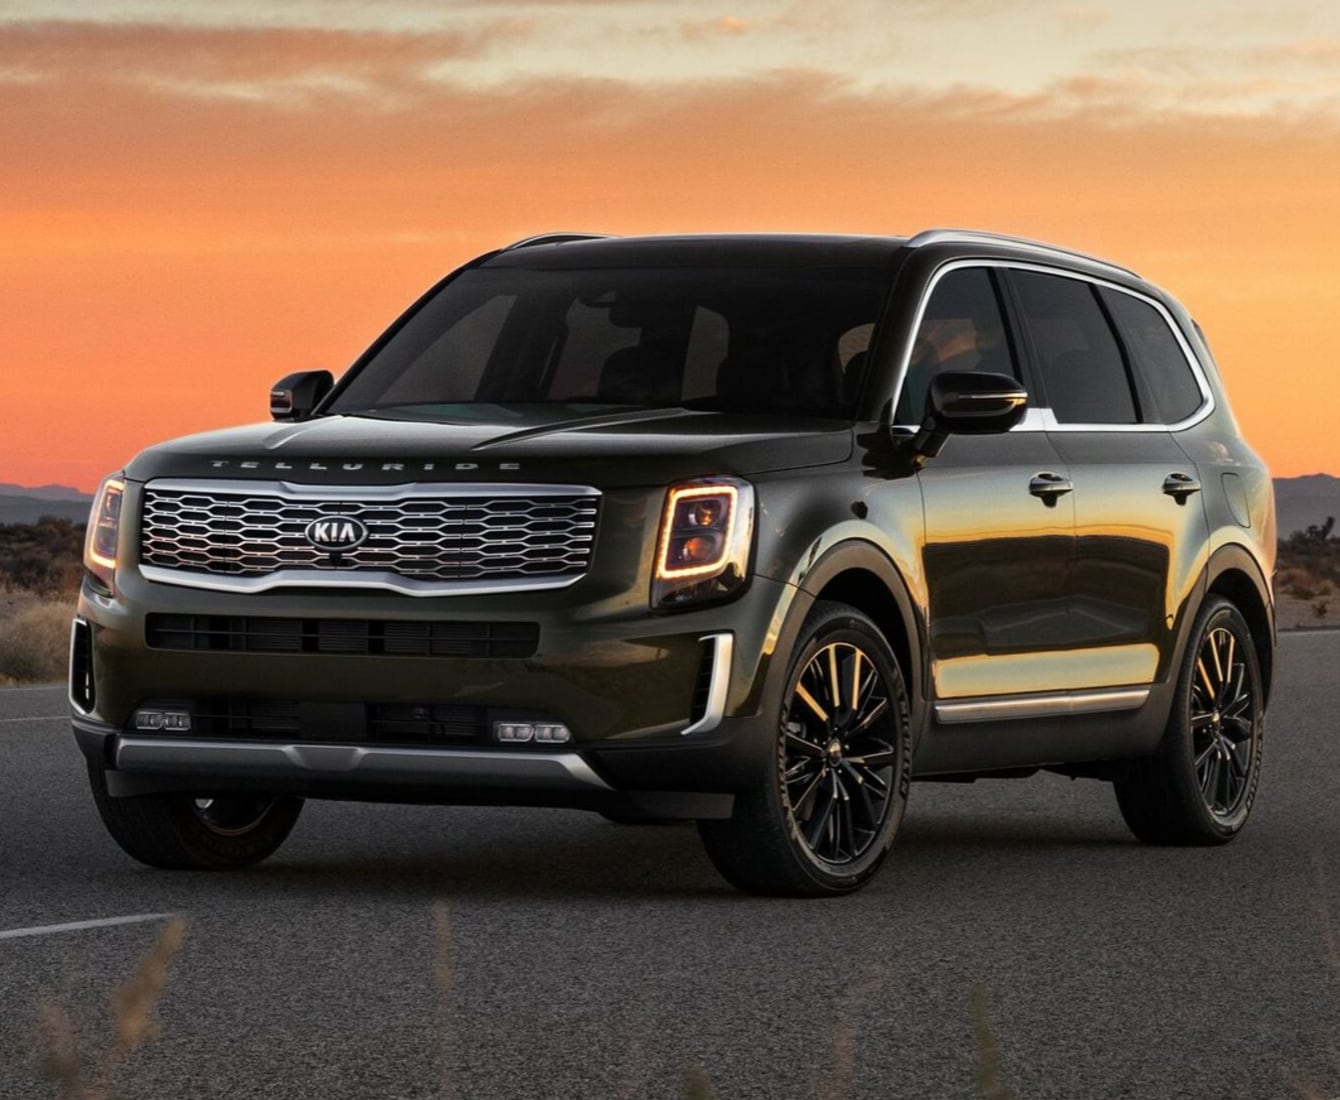 2020 Kia Telluride Exterior view sunset mountains